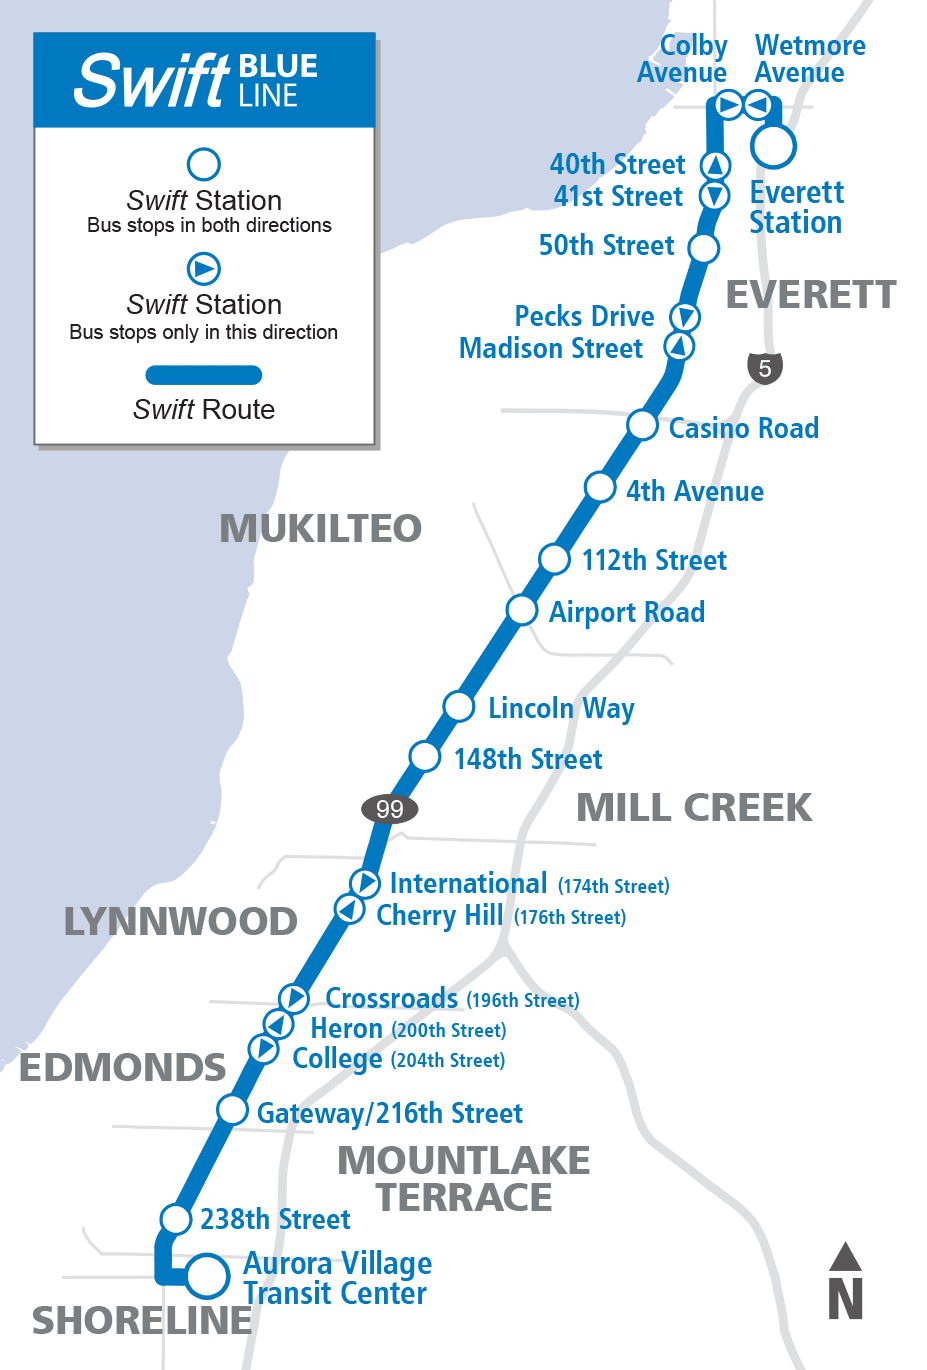 Swift Blue Line System Map